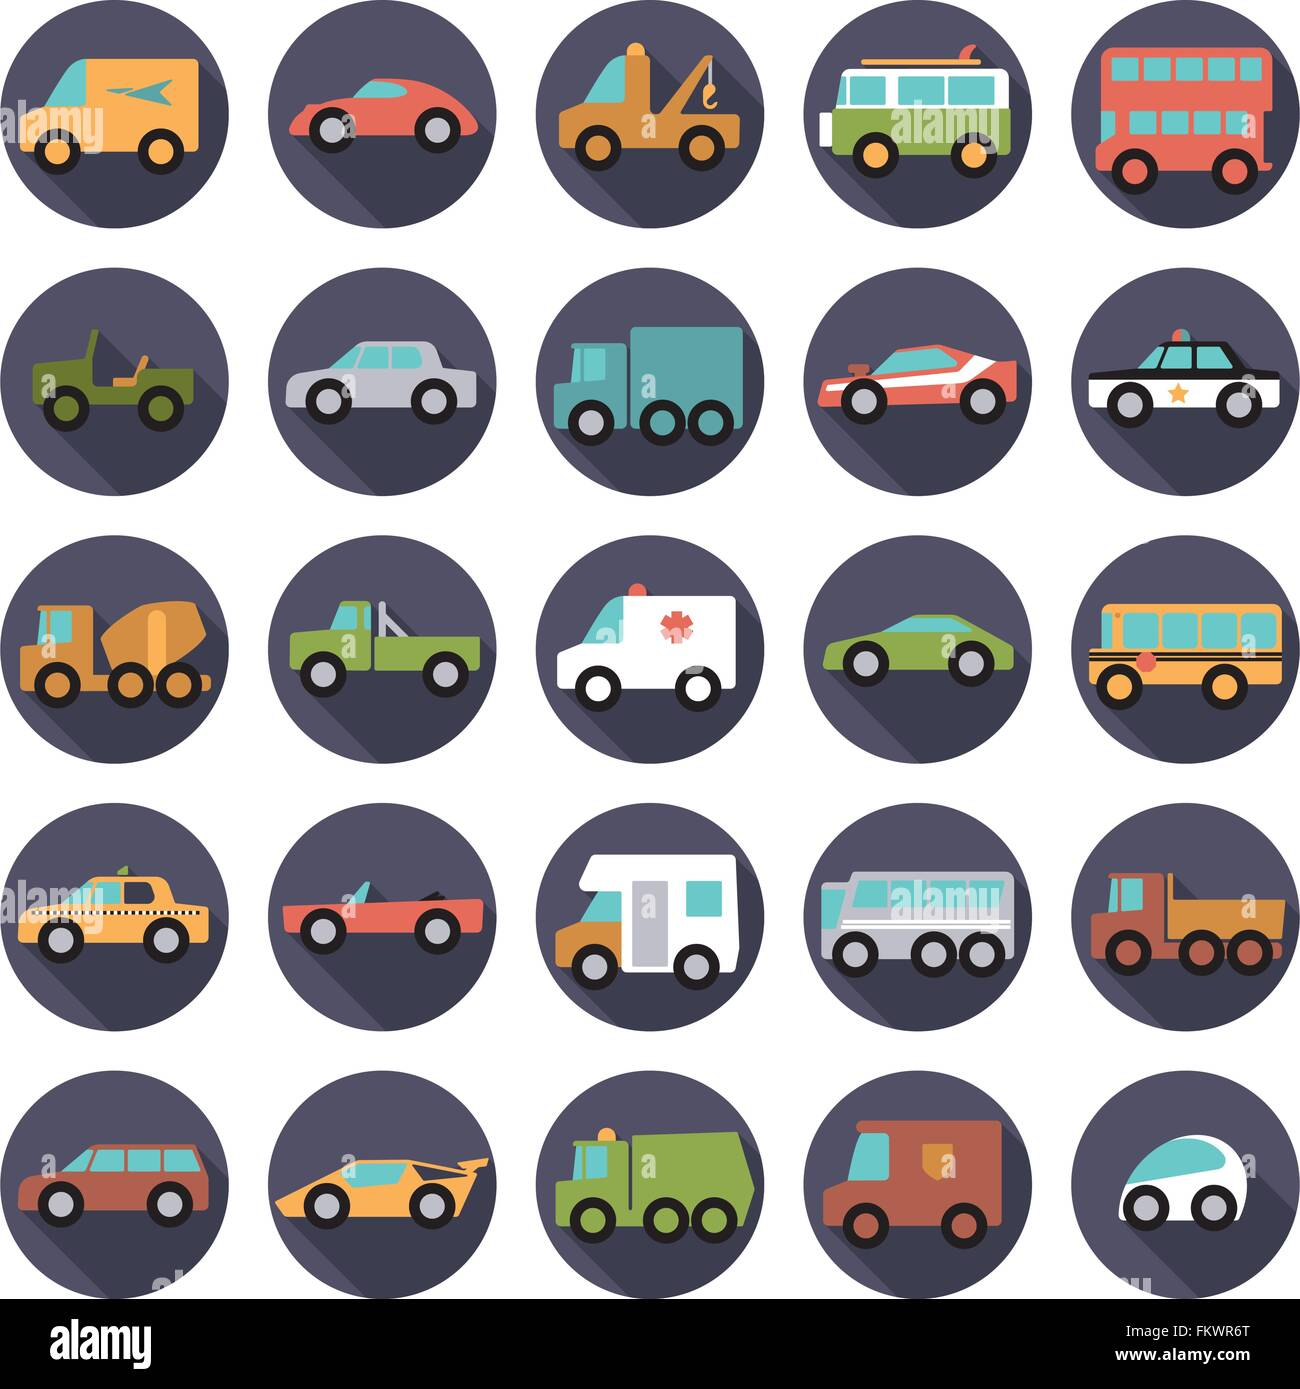 Set of 25 cars, vans and other motor vehicles icons in circles, flat design, long shadow - Stock Image